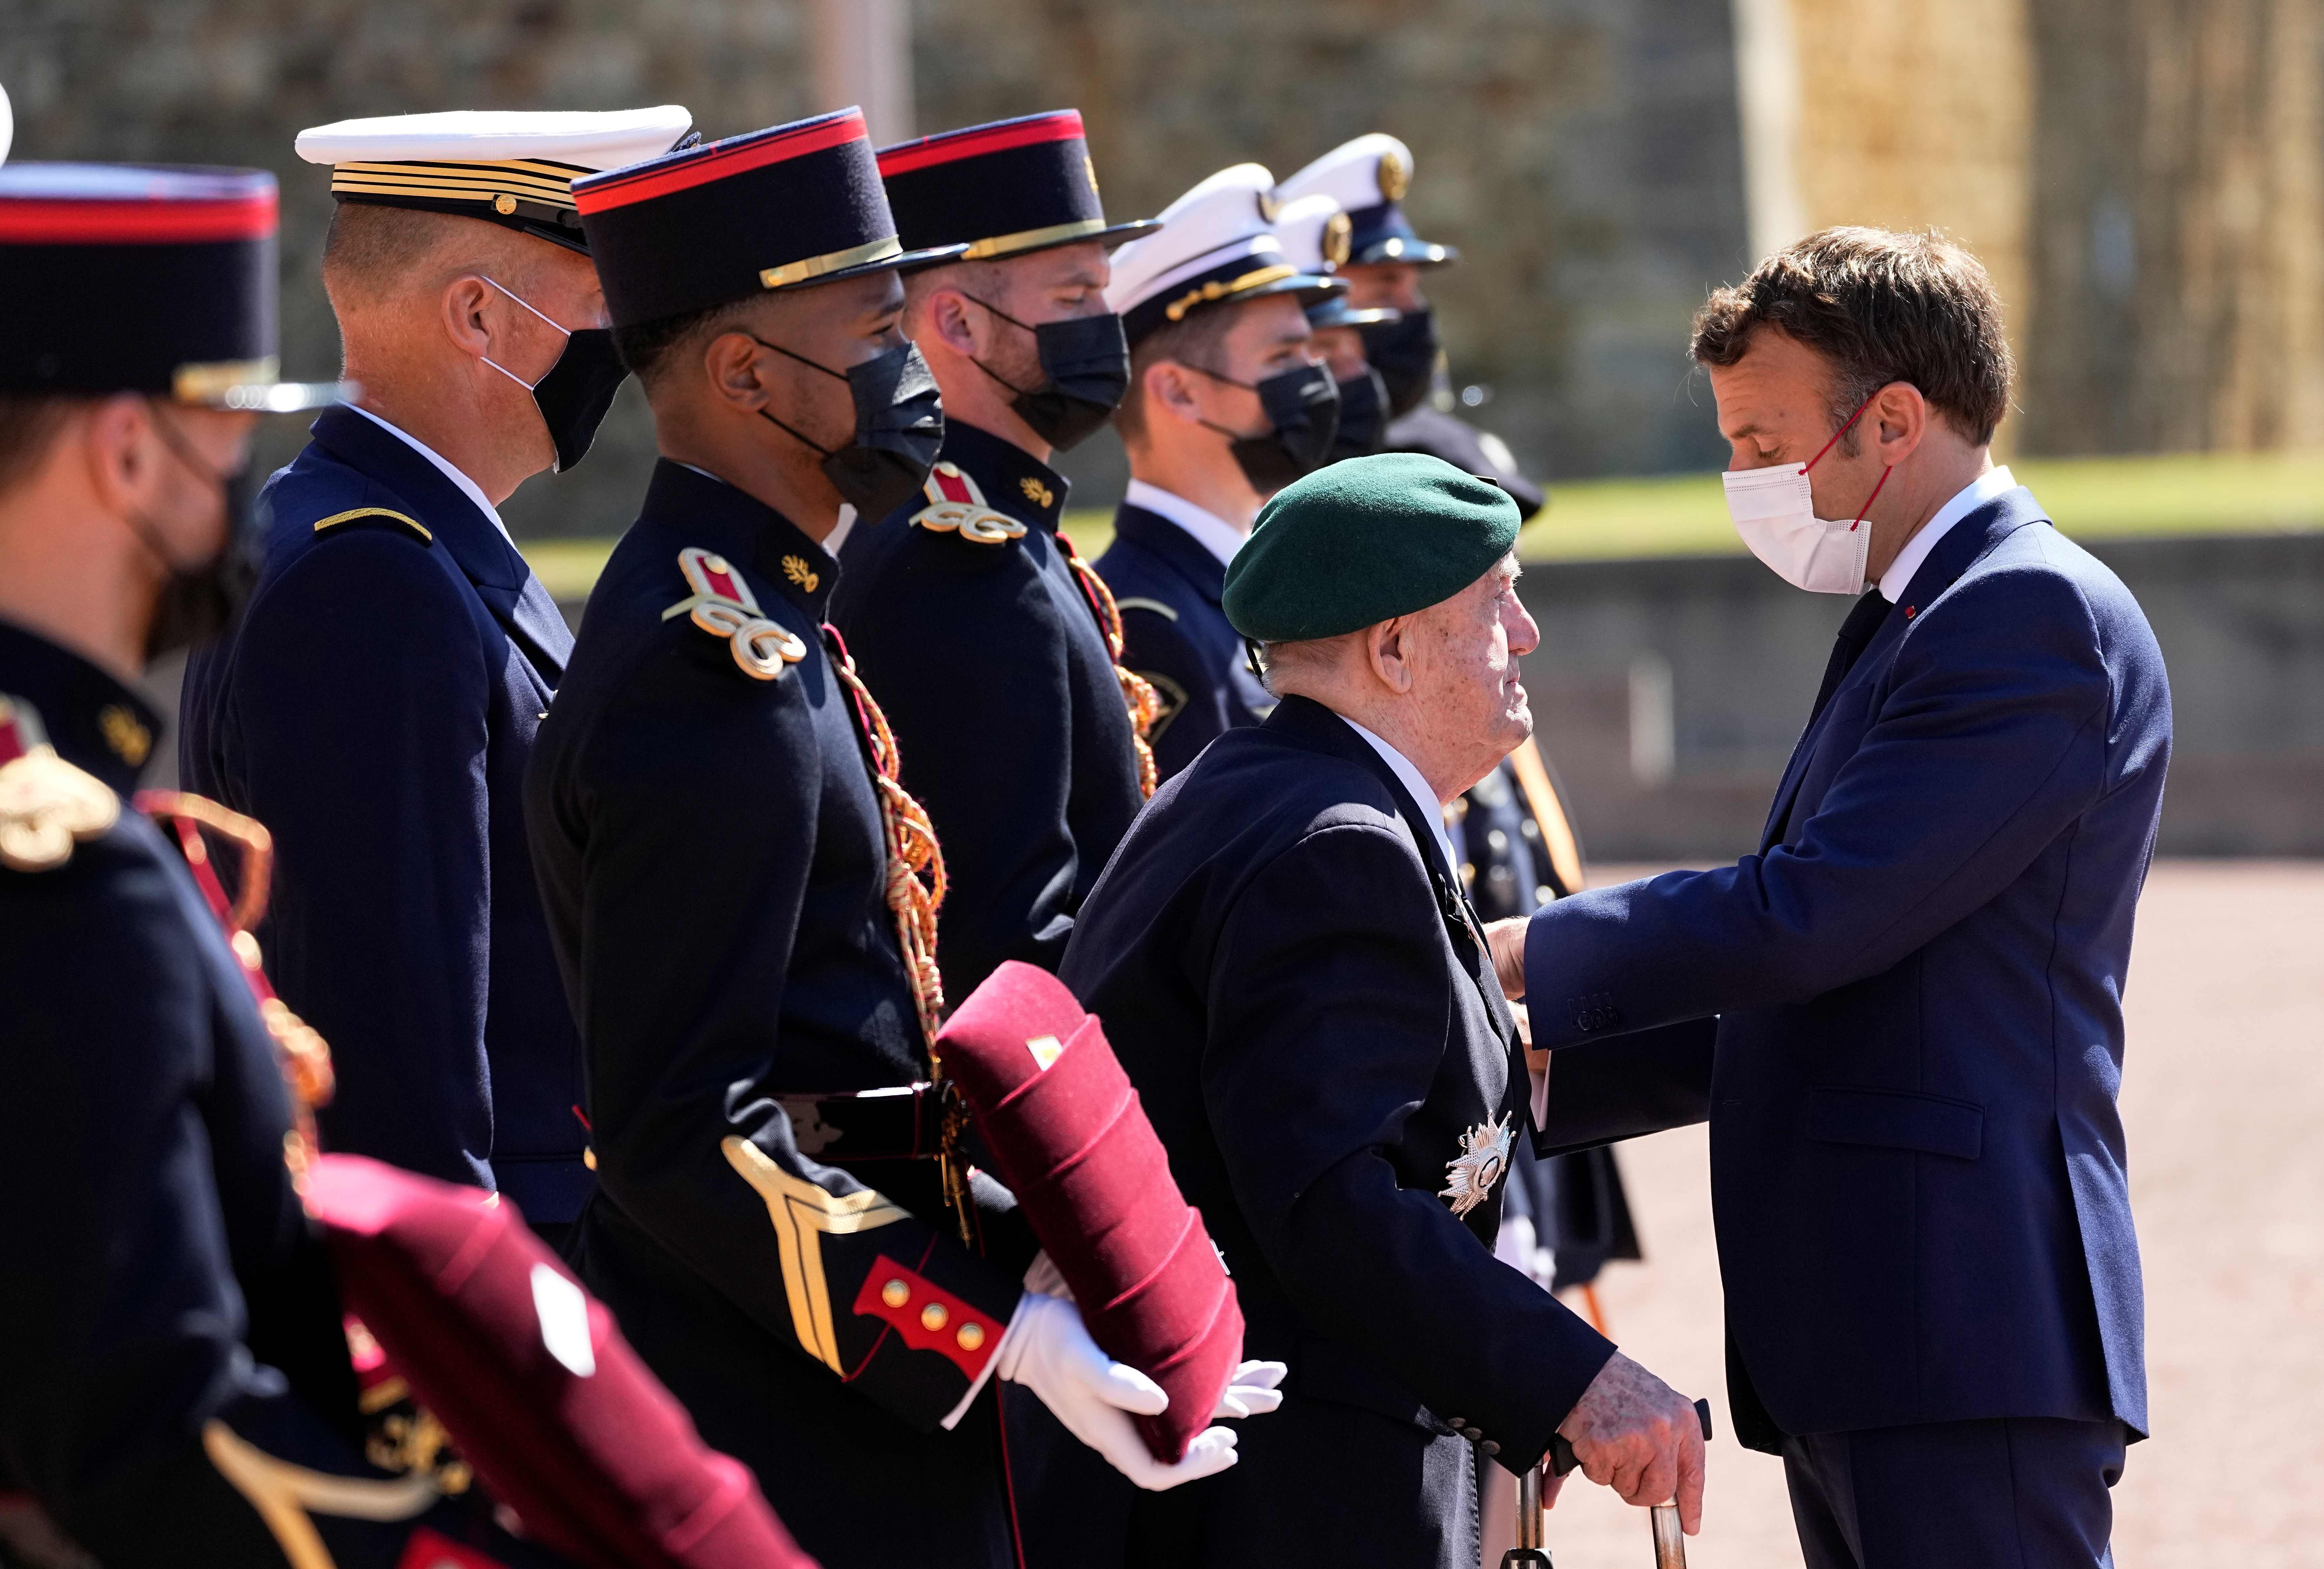 WWII French veterans Leon Gautier, 98 years old last survivor of the  Kieffer Commando, is honored by French President Emmanuel Macron with the Legion of Honor during a WWII ceremony to mark the 81st anniversary of late French Gen. Charles de Gaulle's resistance call from London on June 18, 1940, at the Mont Valerien, in Suresnes, near Paris, France, June 18, 2021. Michel Euler/Pool via REUTERS